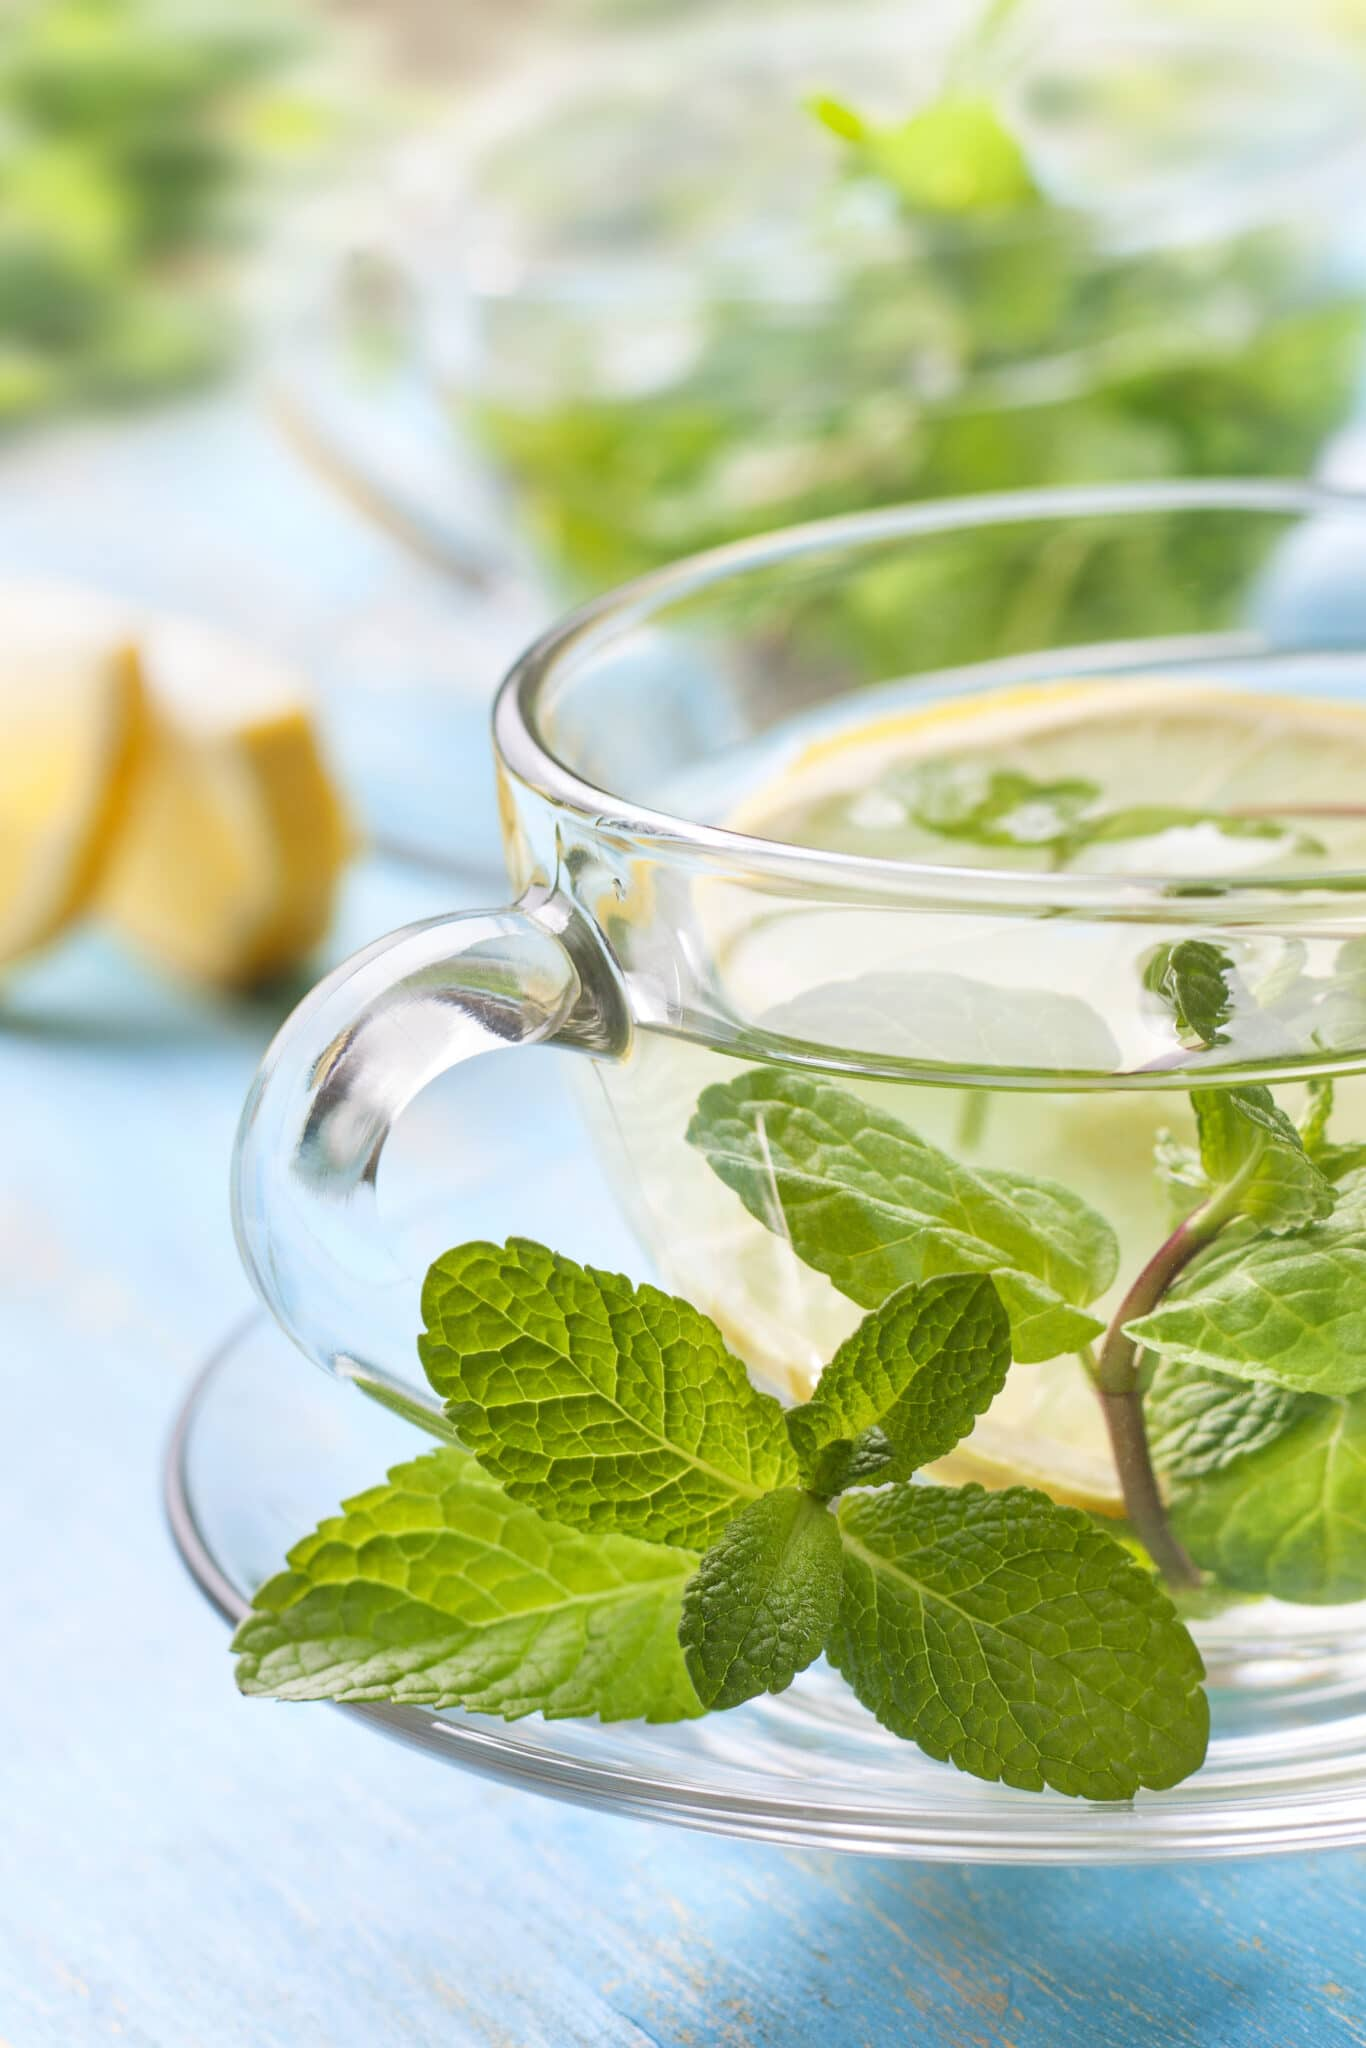 A cup of mint tea in a clear glass cup and saucer with sprigs of fresh mint.  Lemon wedges can be seen slightly out of focus in the background.